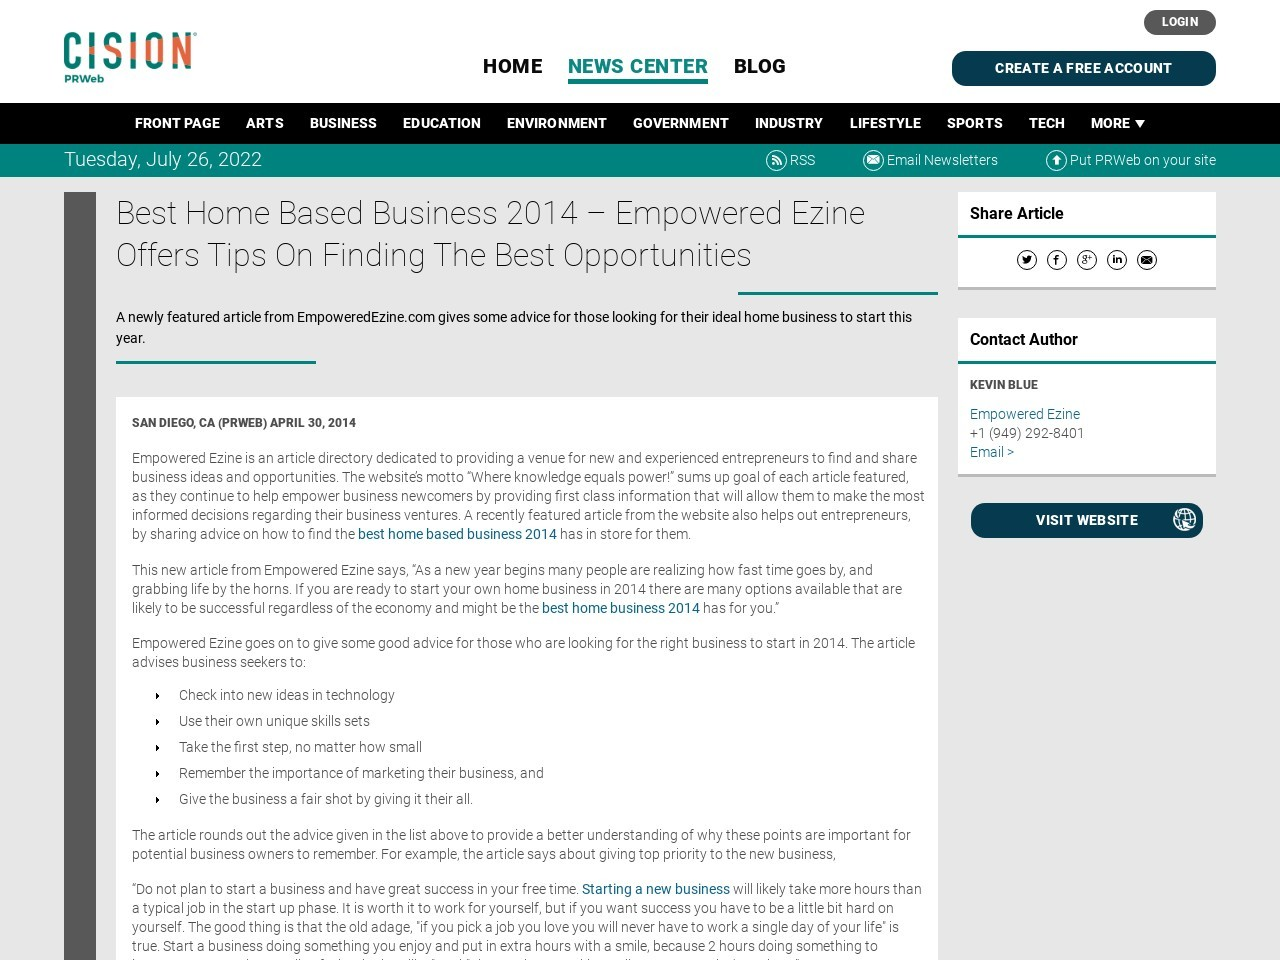 Best Home Based Business 2014 – Empowered Ezine Offers Tips On Finding …